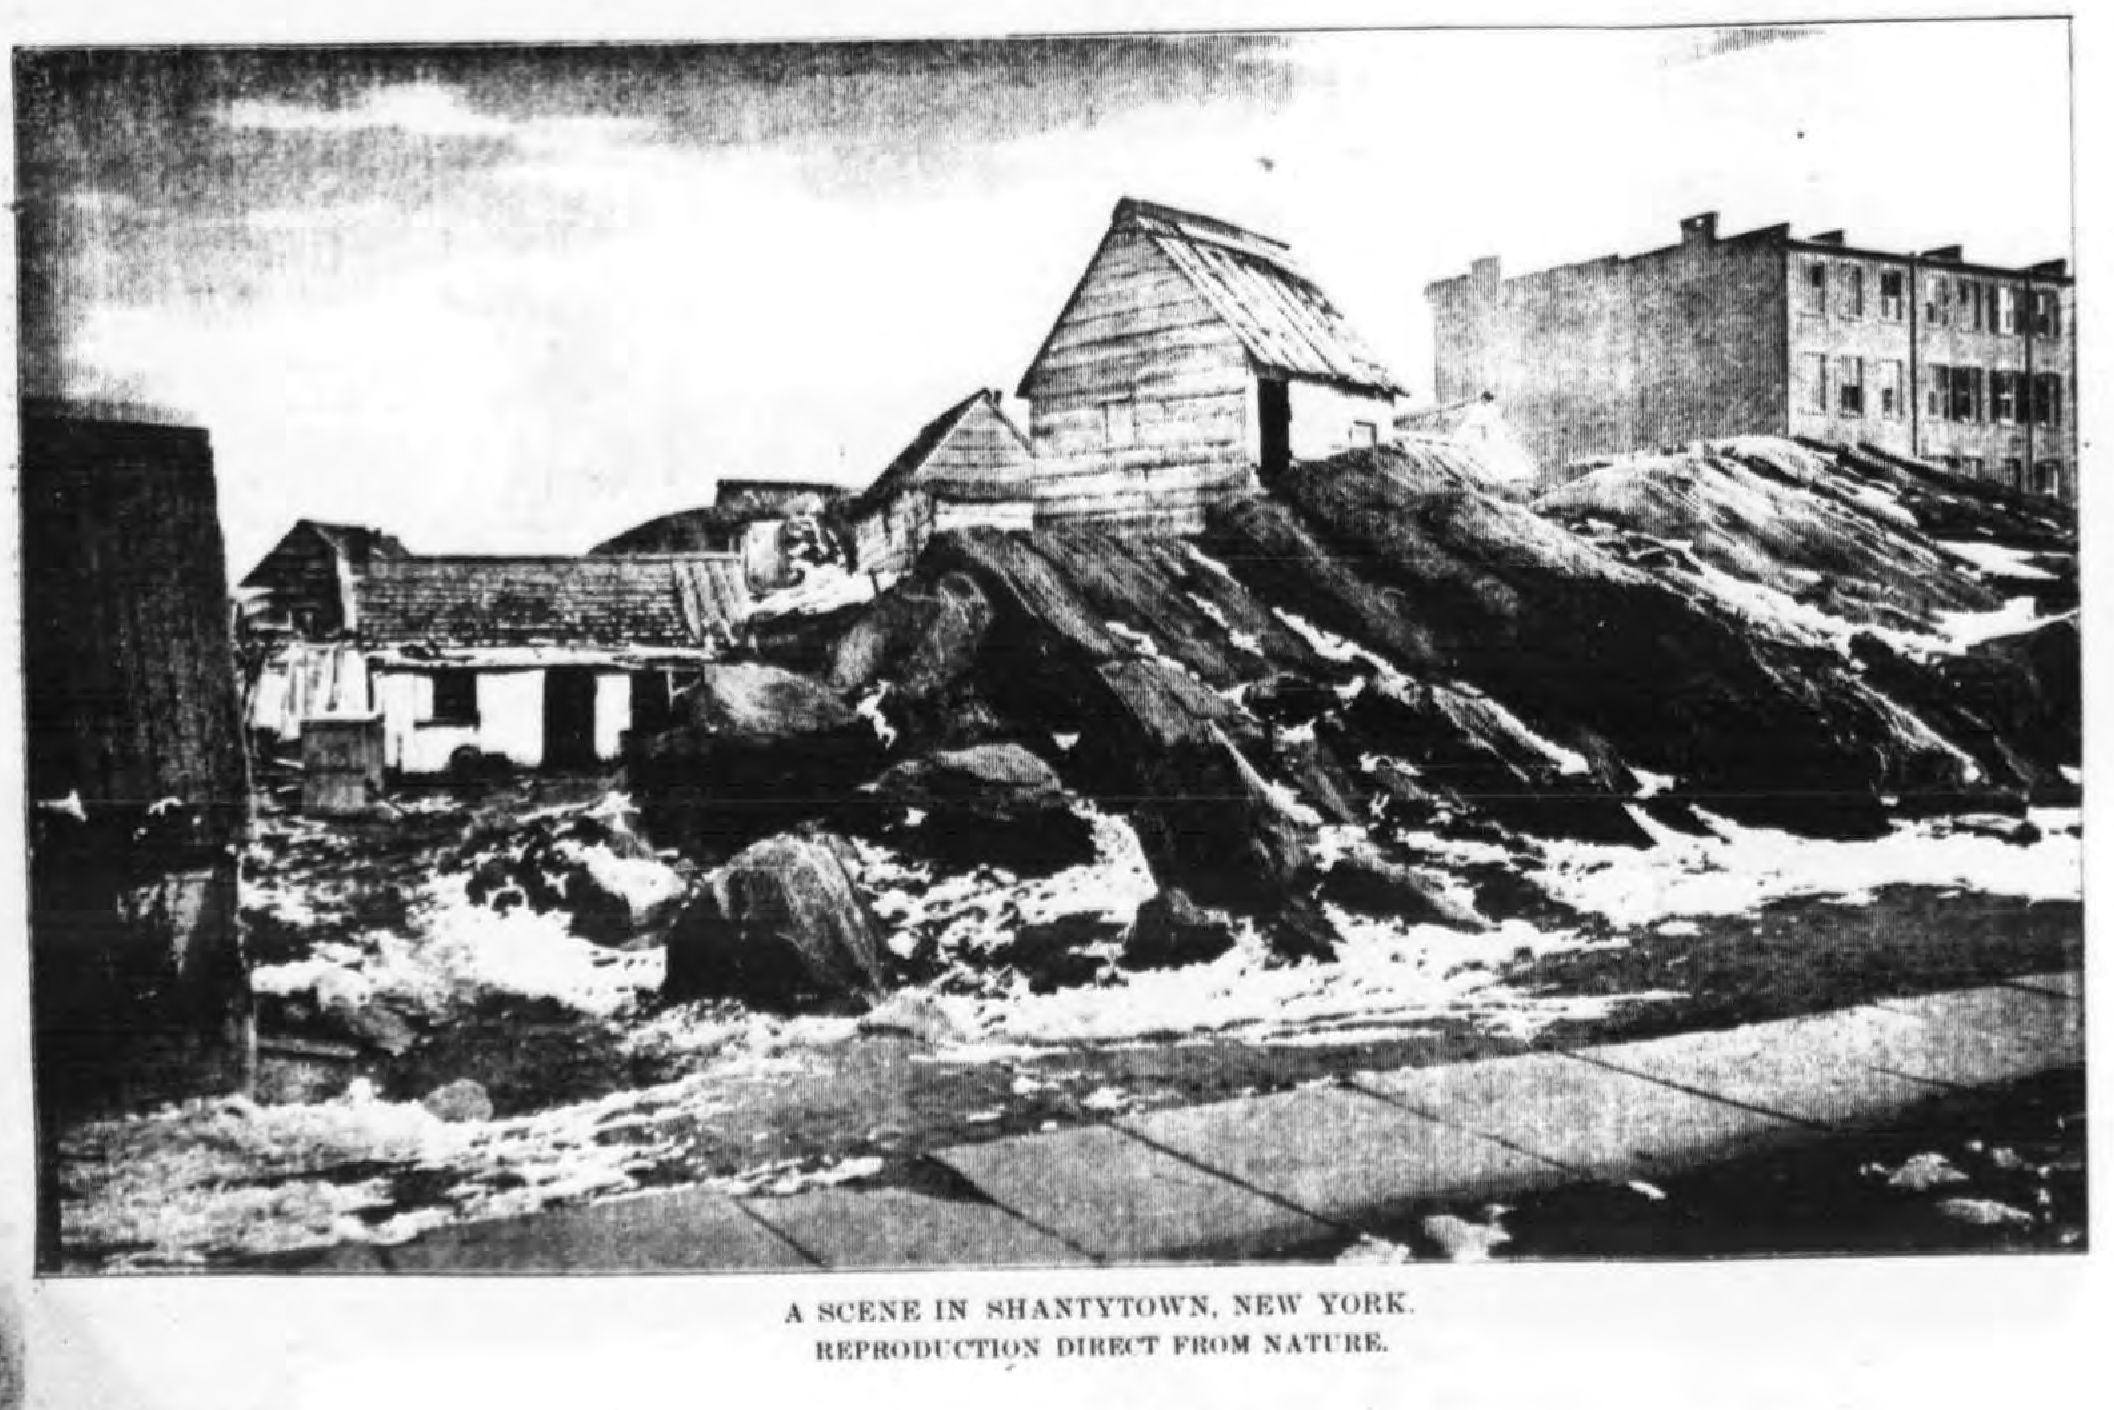 A_Scene_in_Shantytown,_New_York_(1880)